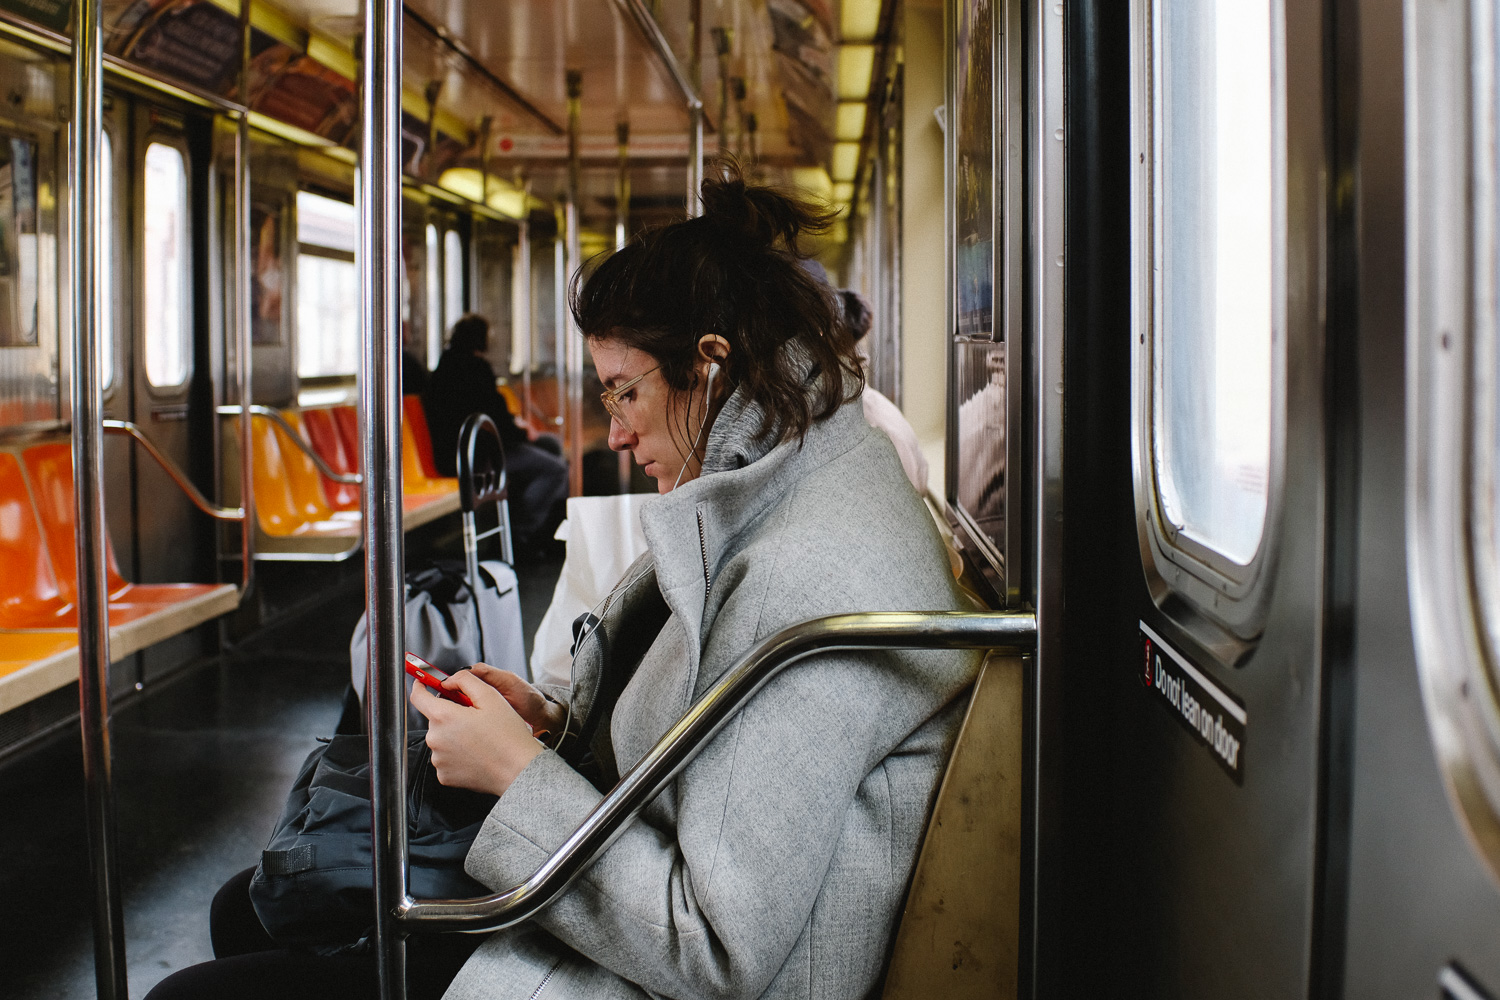 A girl on the 1 Train in Harlem, Manhattan. Fuji X100F, TCL-X100